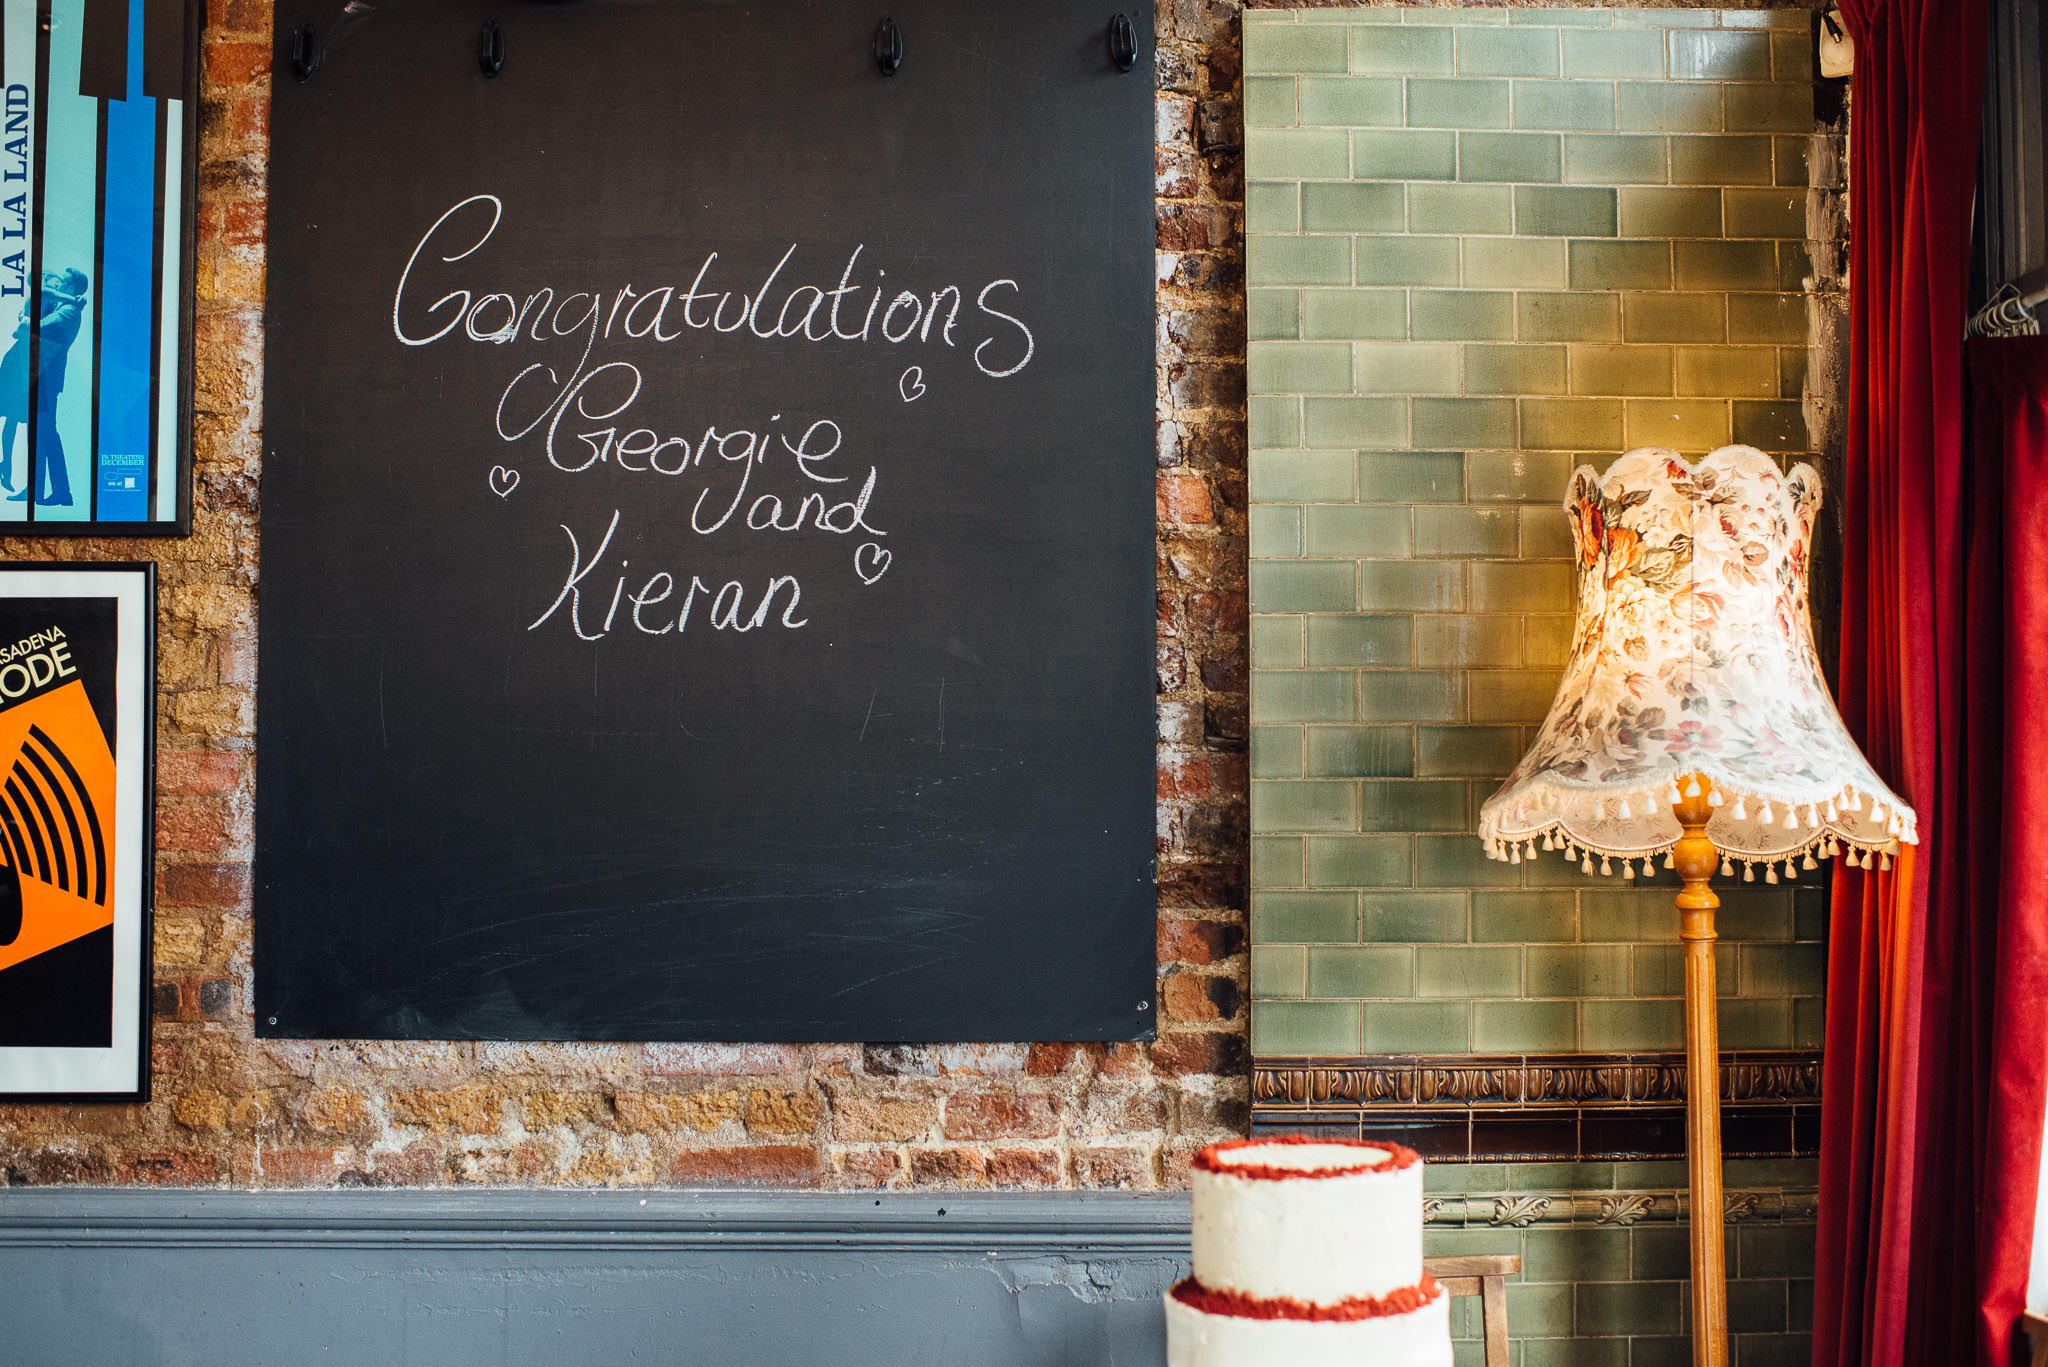 The londesborough pub wedding sign in stoke newington town hall wedding by creative and alternative london wedding photographer the shannons photography